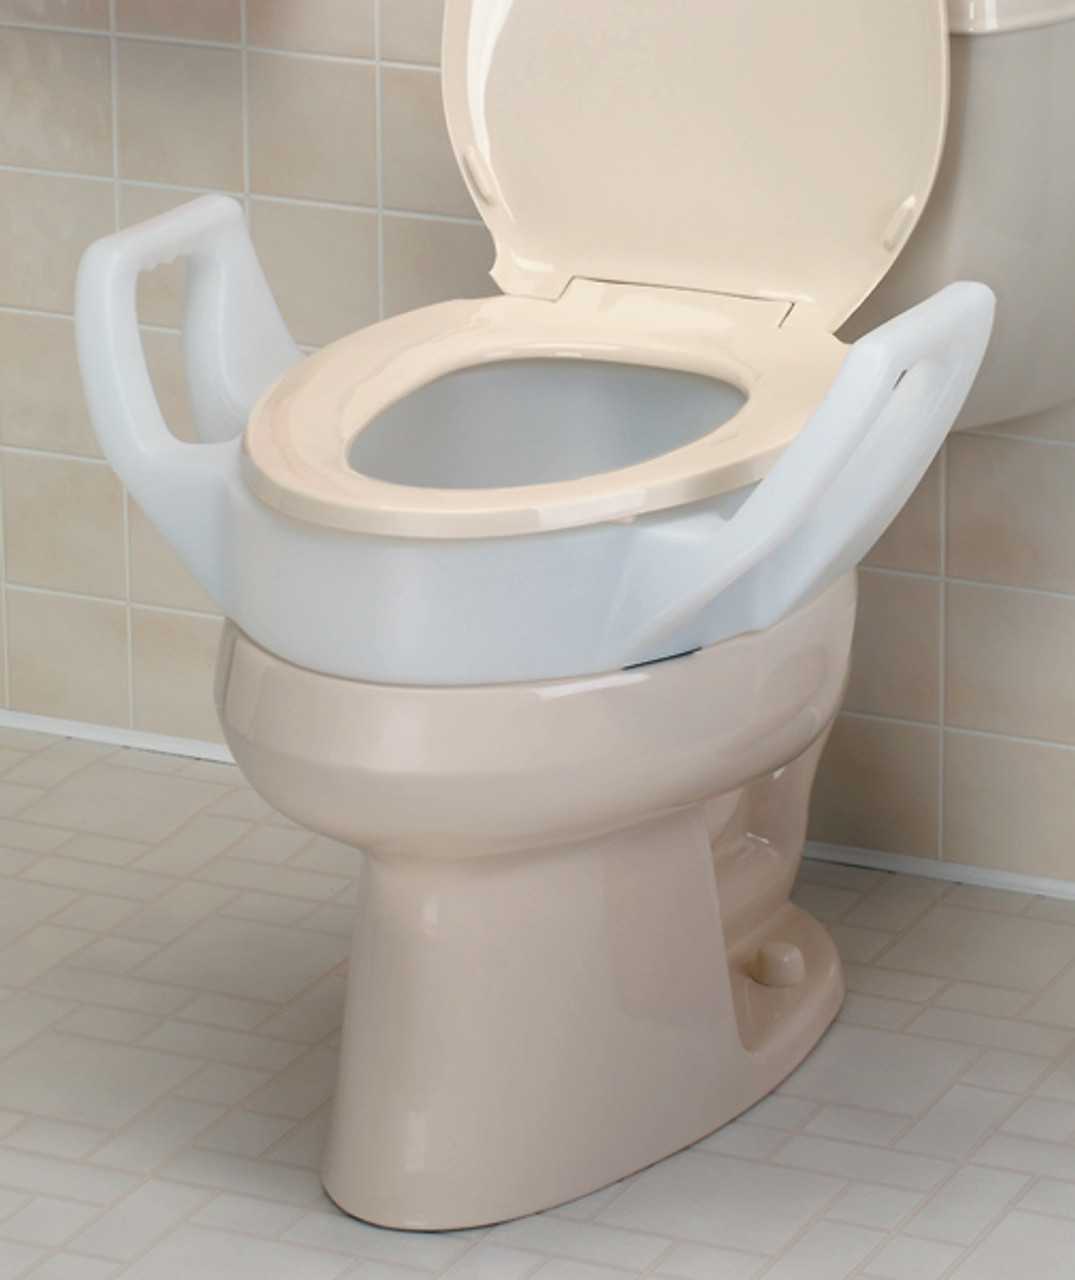 Excellent Nc28966 1 North Coast Medical Toilet Seat Riser With Arms Elongated Onthecornerstone Fun Painted Chair Ideas Images Onthecornerstoneorg